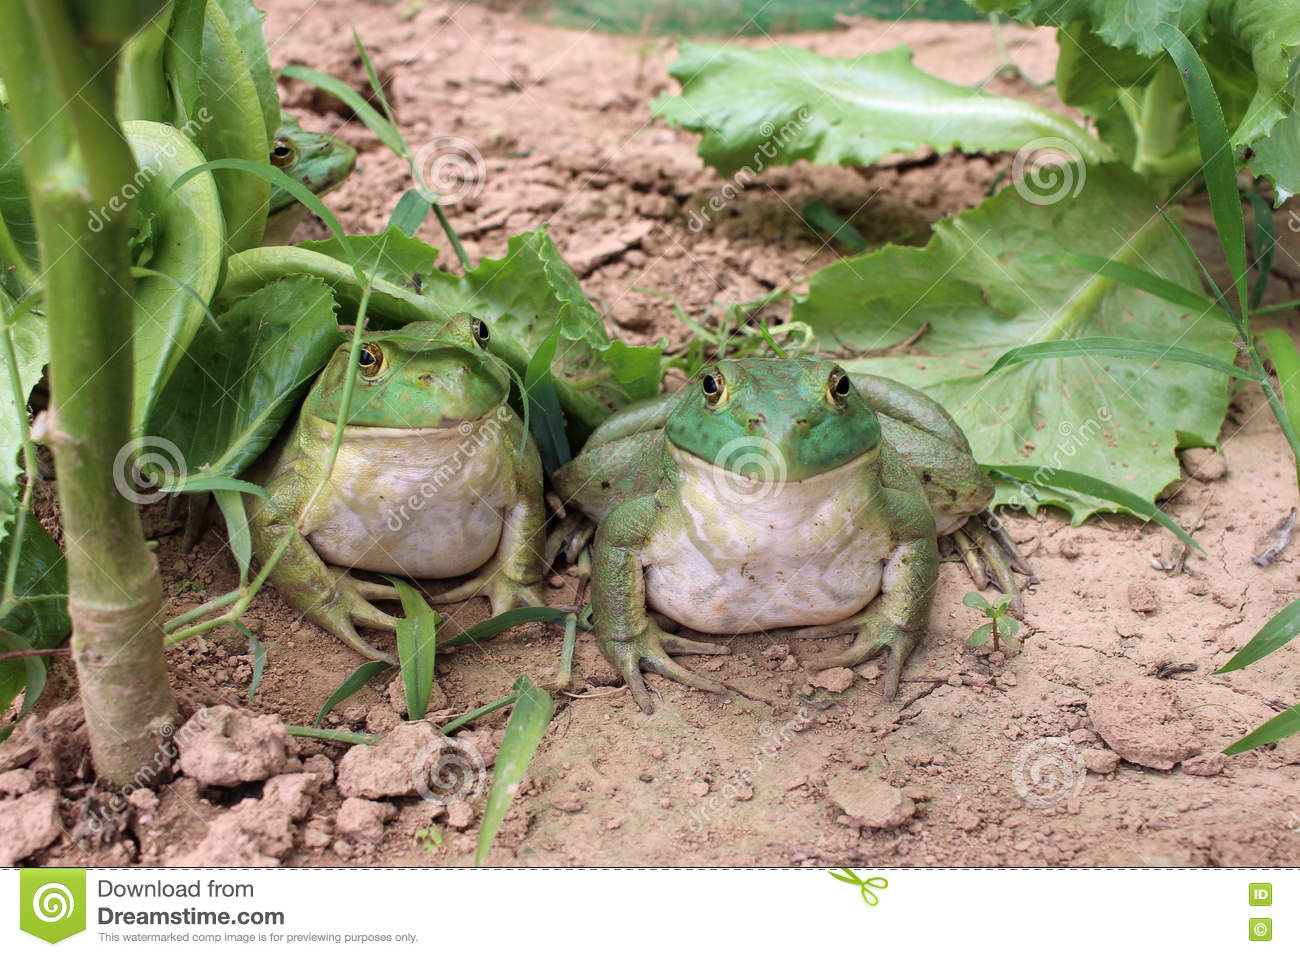 Artificial feeding of Bullfrog